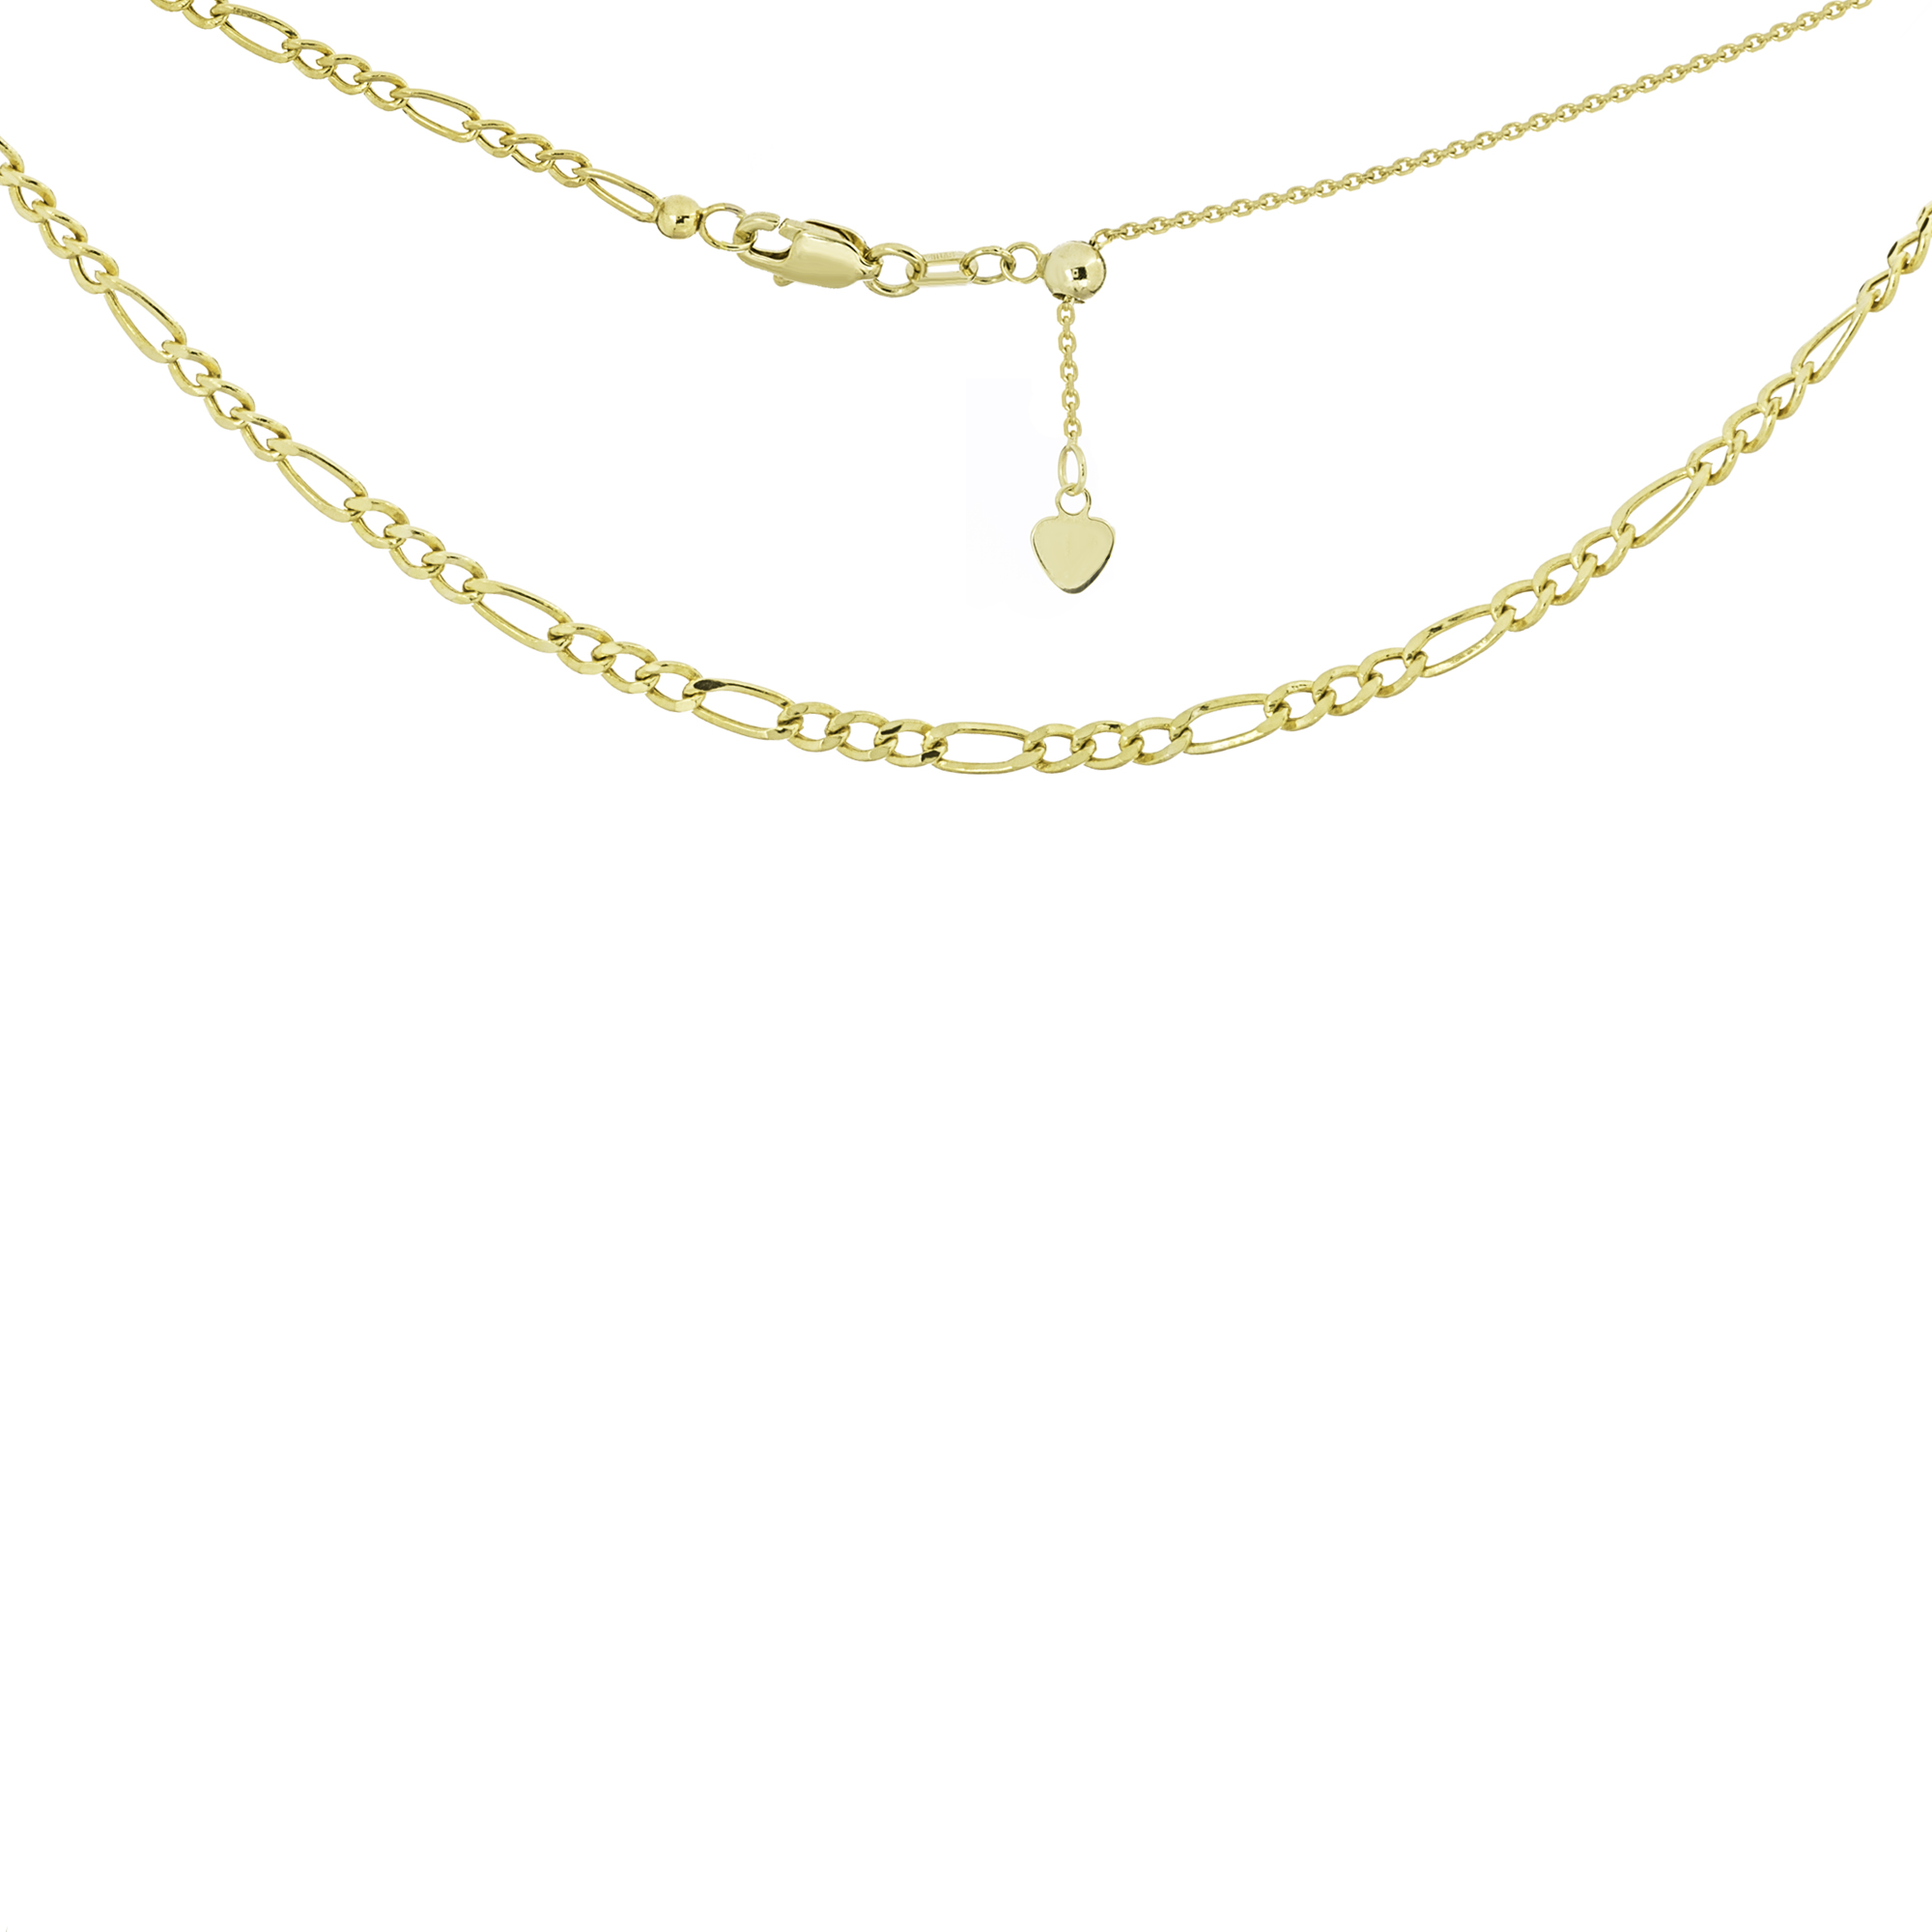 wheat necklace com cut chains chain gold italian amazon diamond dp jewelry white